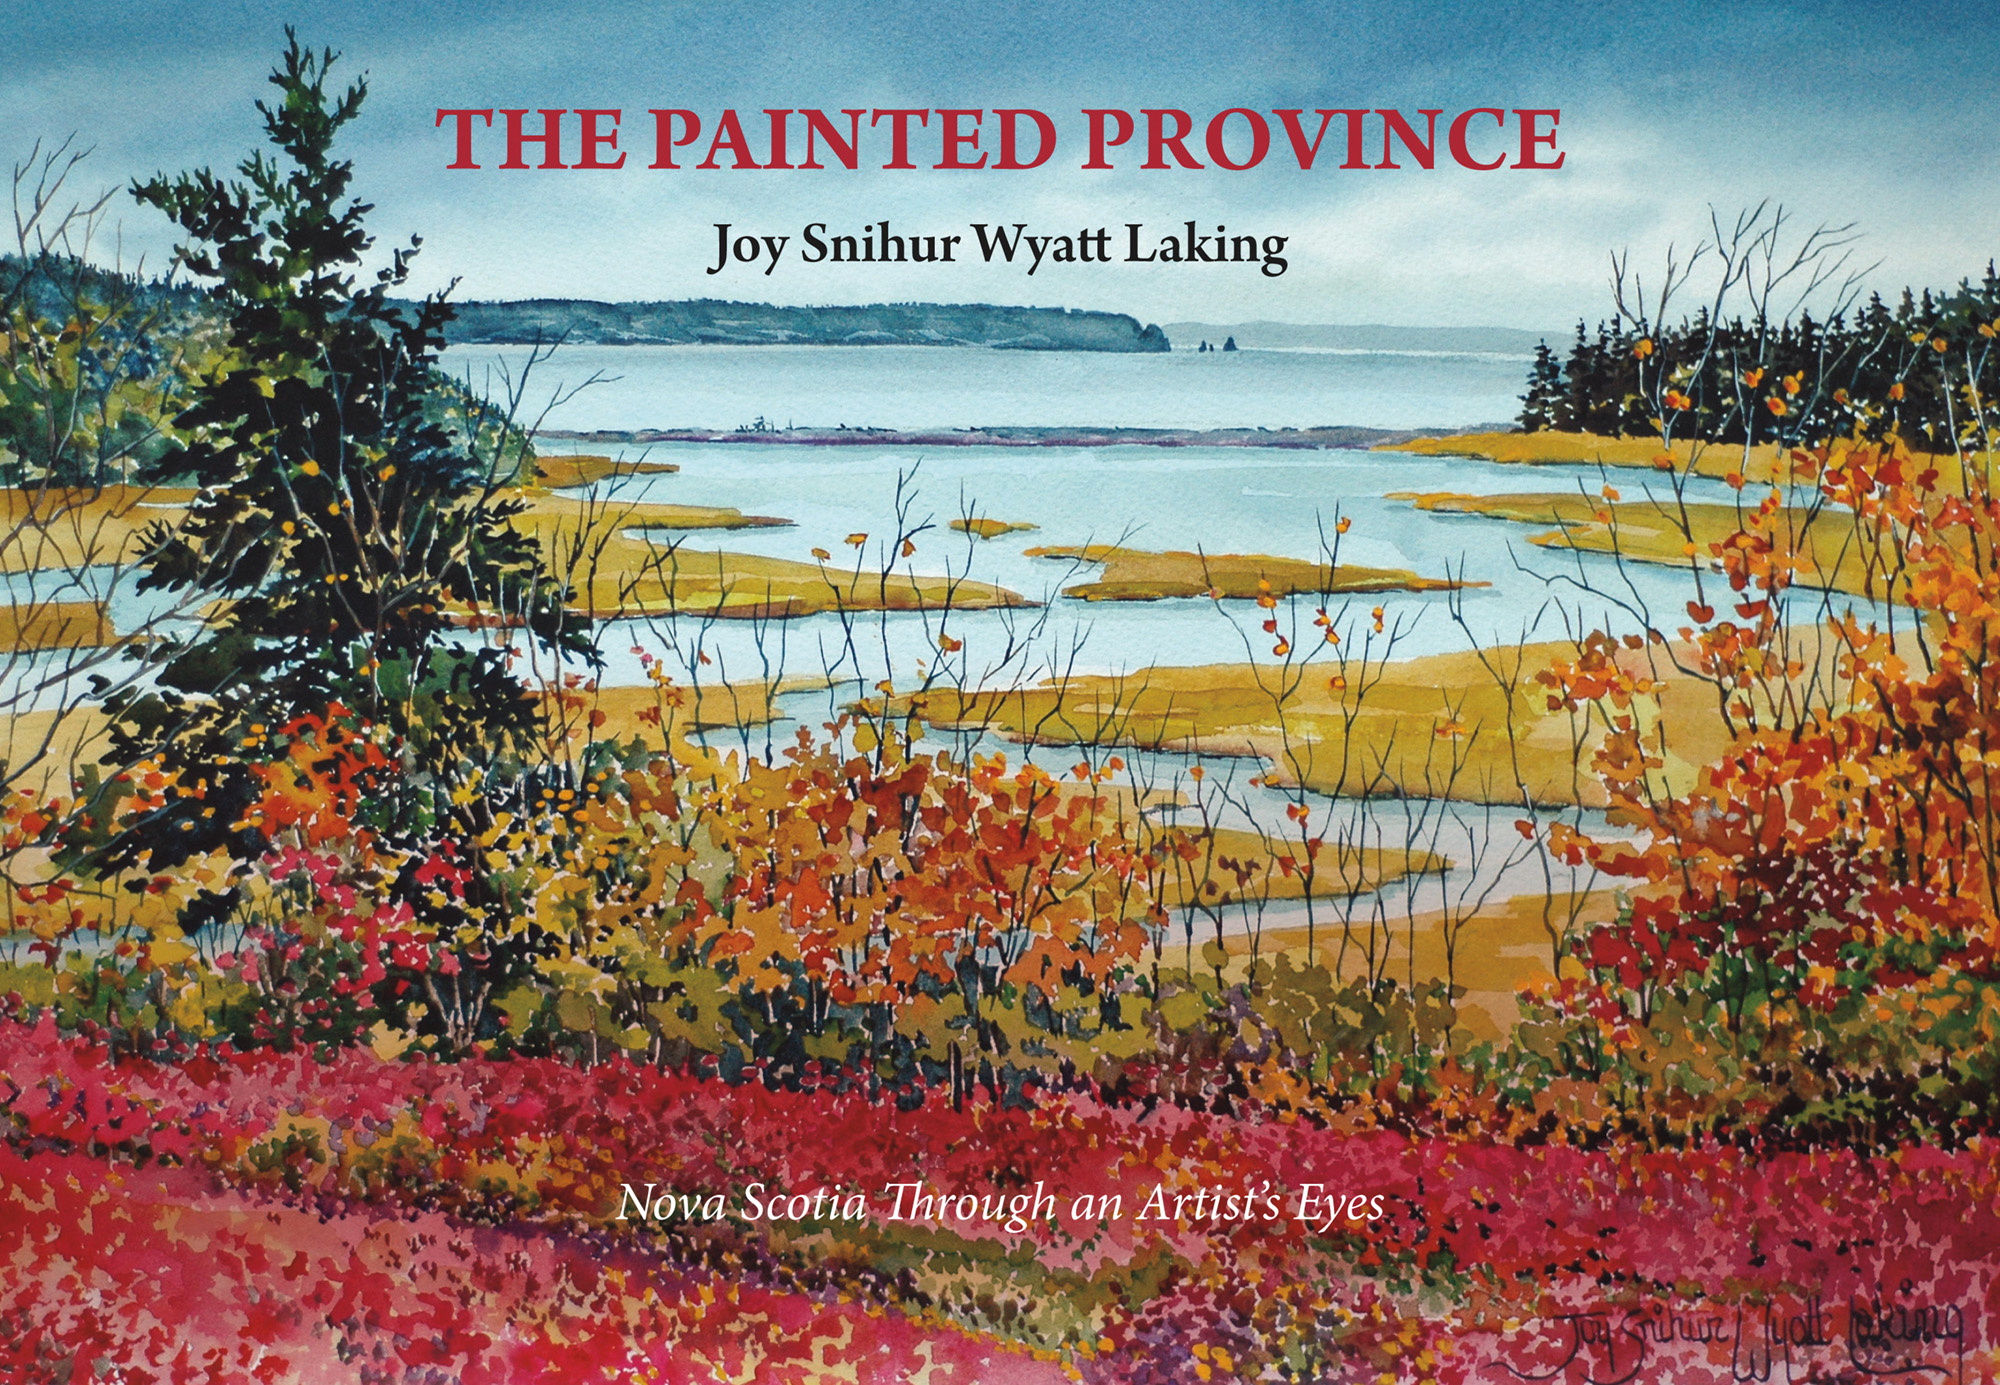 The Painted Province